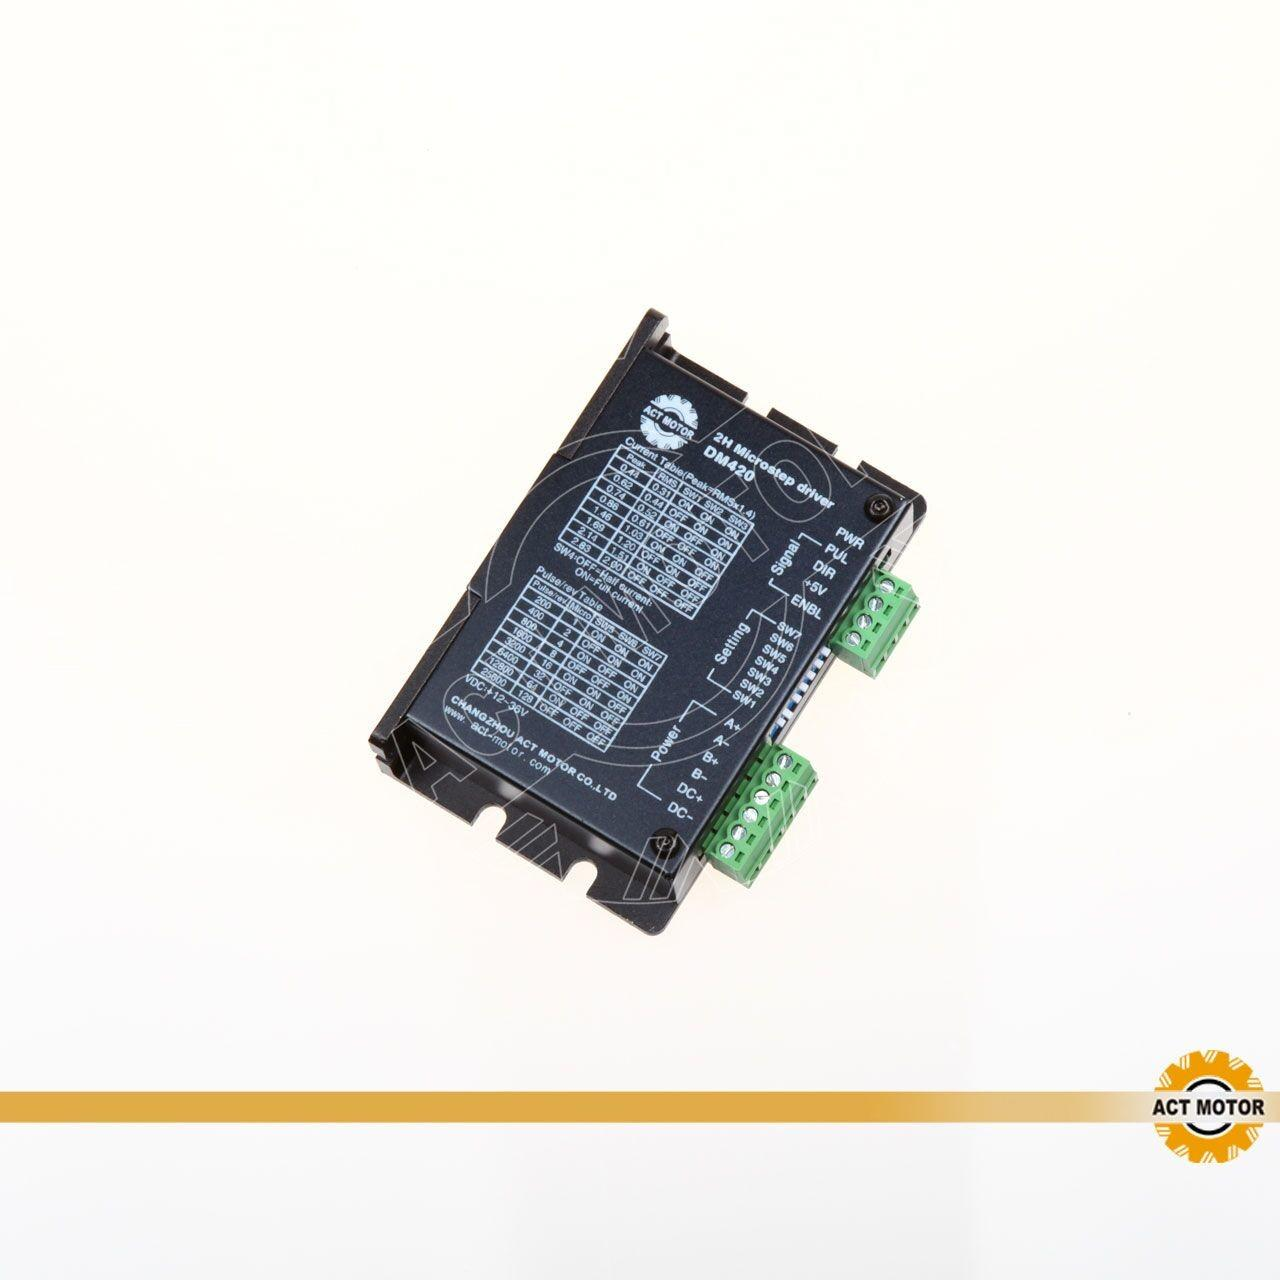 Buy cheap ACT DM420 hybrid stepper motor drivers, Factory direct sales from wholesalers